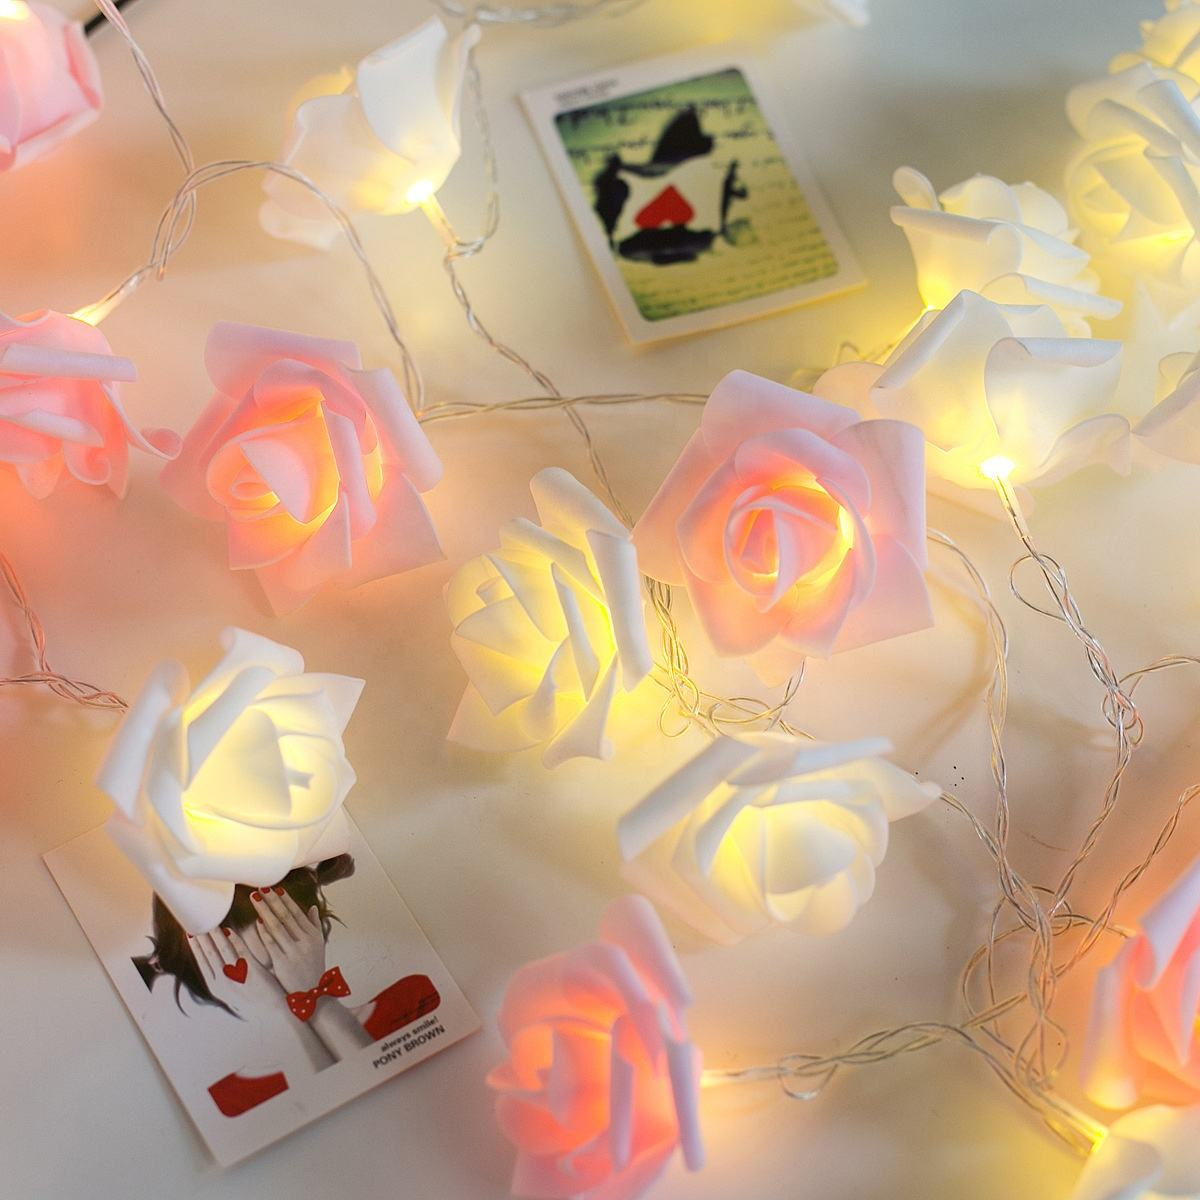 Kanlong factory price 40 LED bulbs pink white rose shape christmas valentine's day wedding decorative flower fairy string light